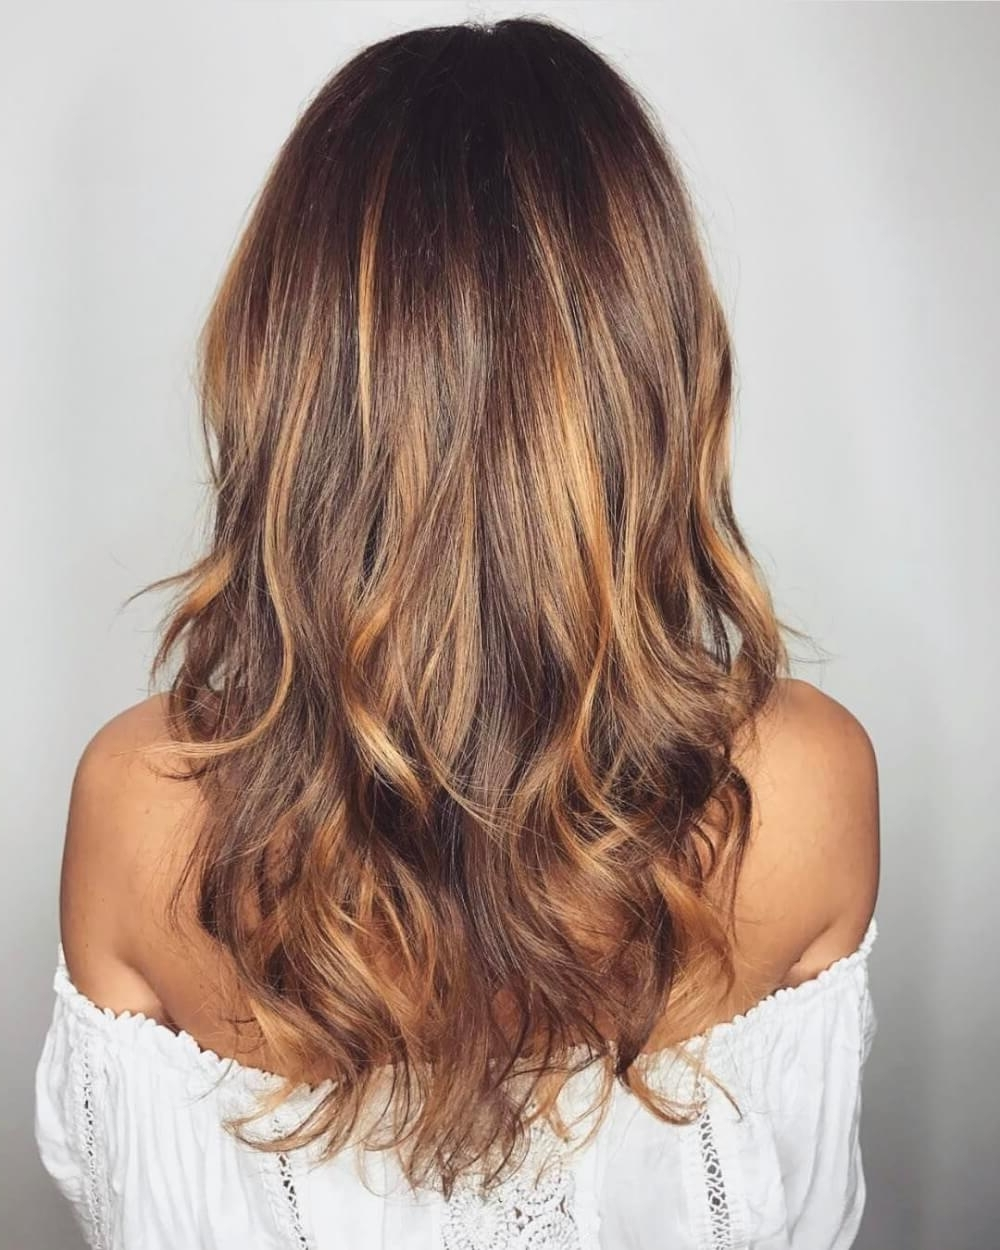 34 Light Brown Hair Colors That Are Blowing Up In 2018 With 2018 Light Copper Hairstyles With Blonde Babylights (View 5 of 20)